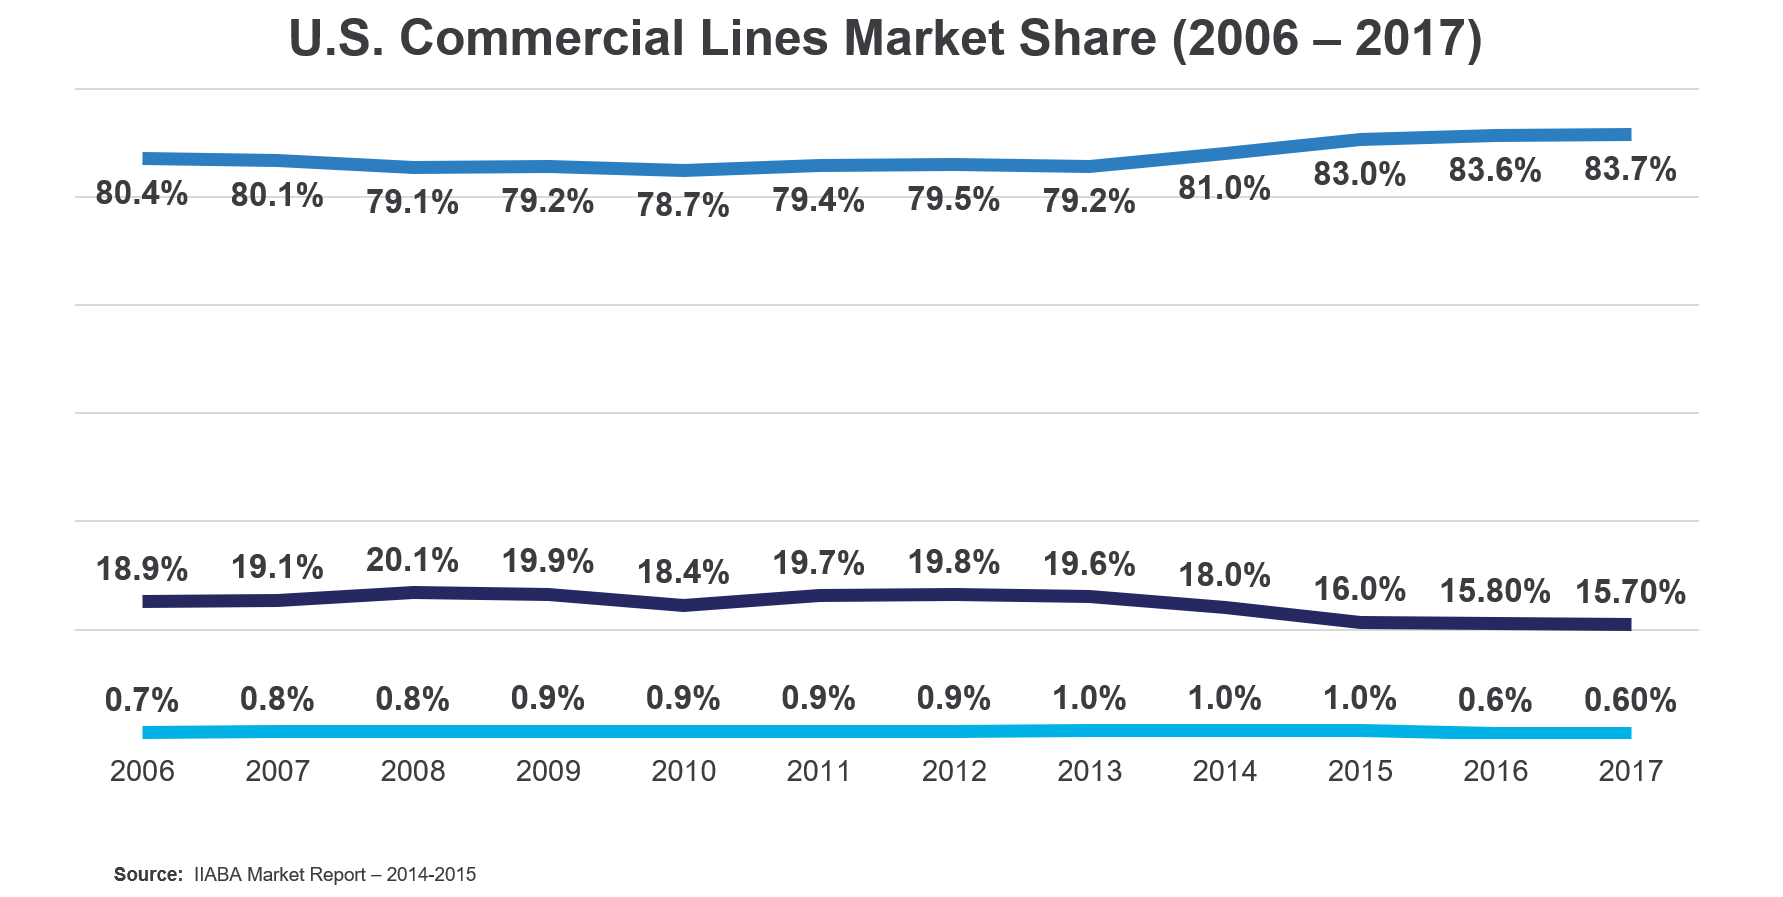 U.S. Commercial Lines Market Share (2006 – 2017)